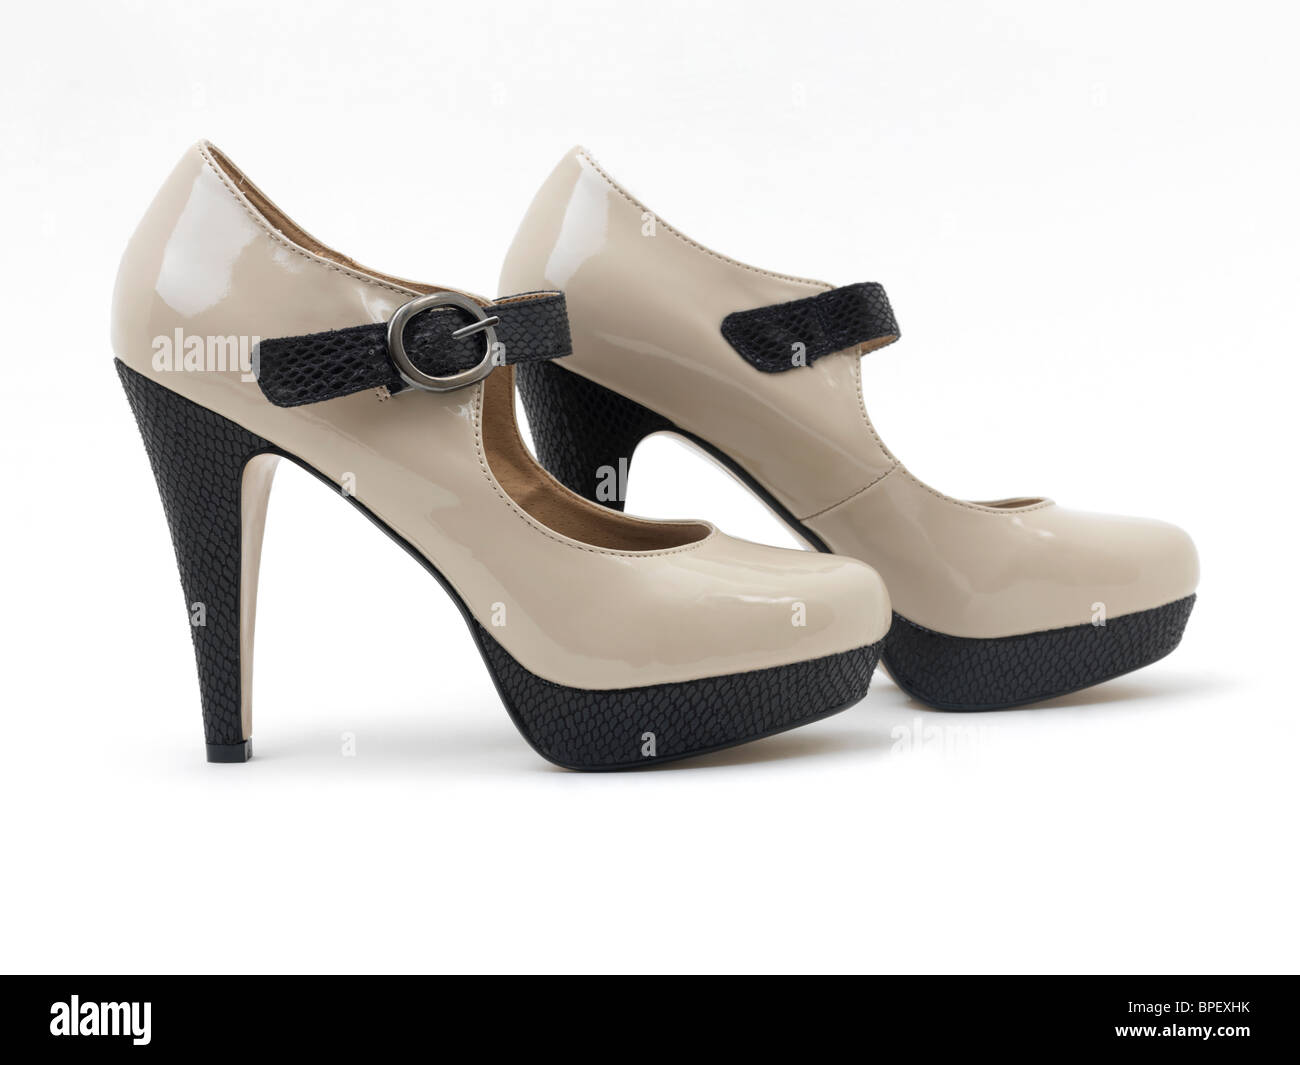 1b8dcac5cd000 Mary Jane Shoes Stock Photos & Mary Jane Shoes Stock Images - Alamy